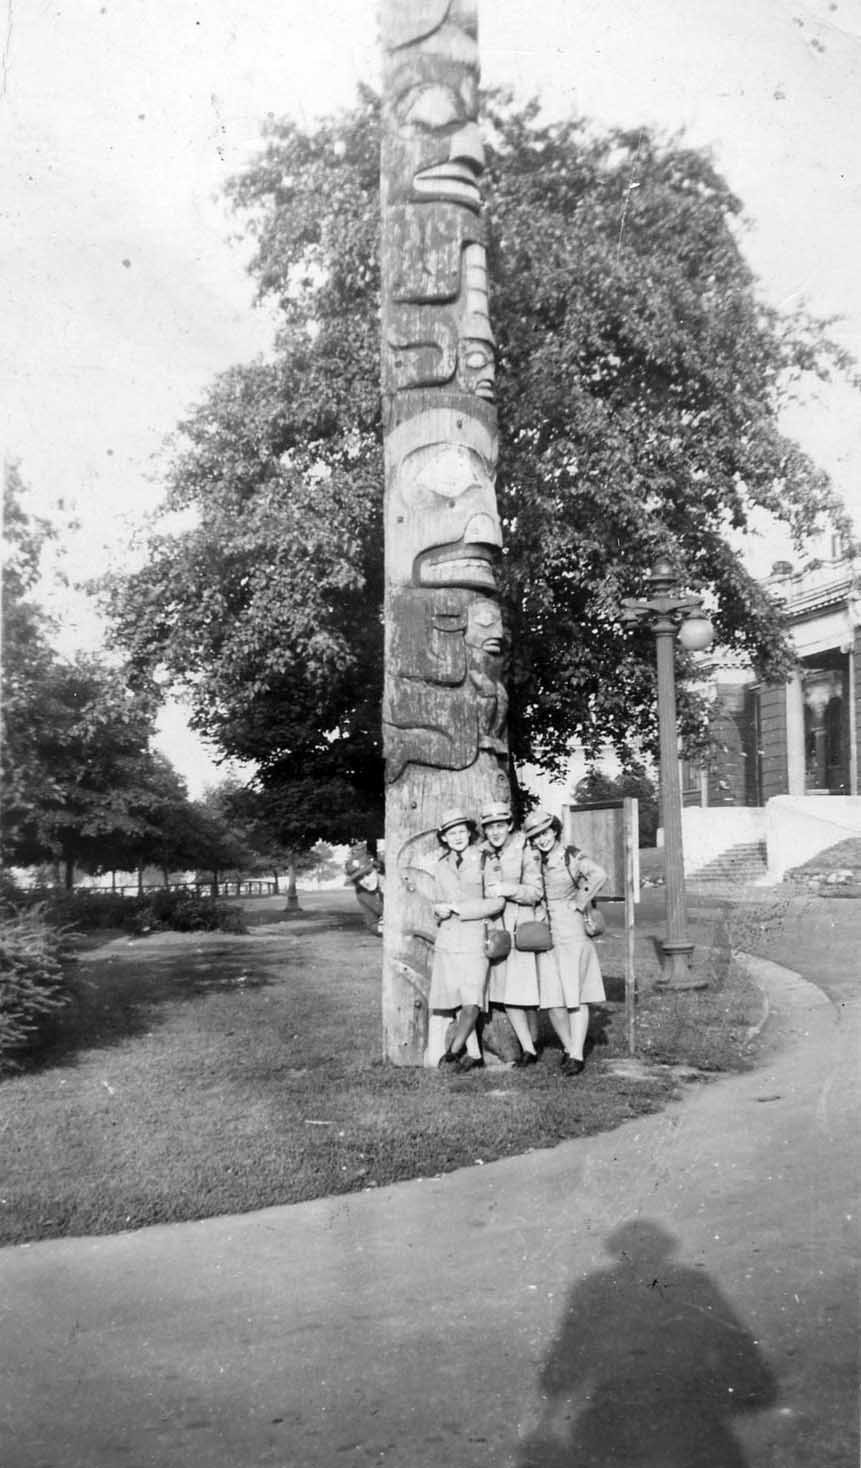 Private Ruth Finley with her CWAC comrades, posing with a totem pole. Courtesy the Kawartha Lakes Public Library Digital Archive.